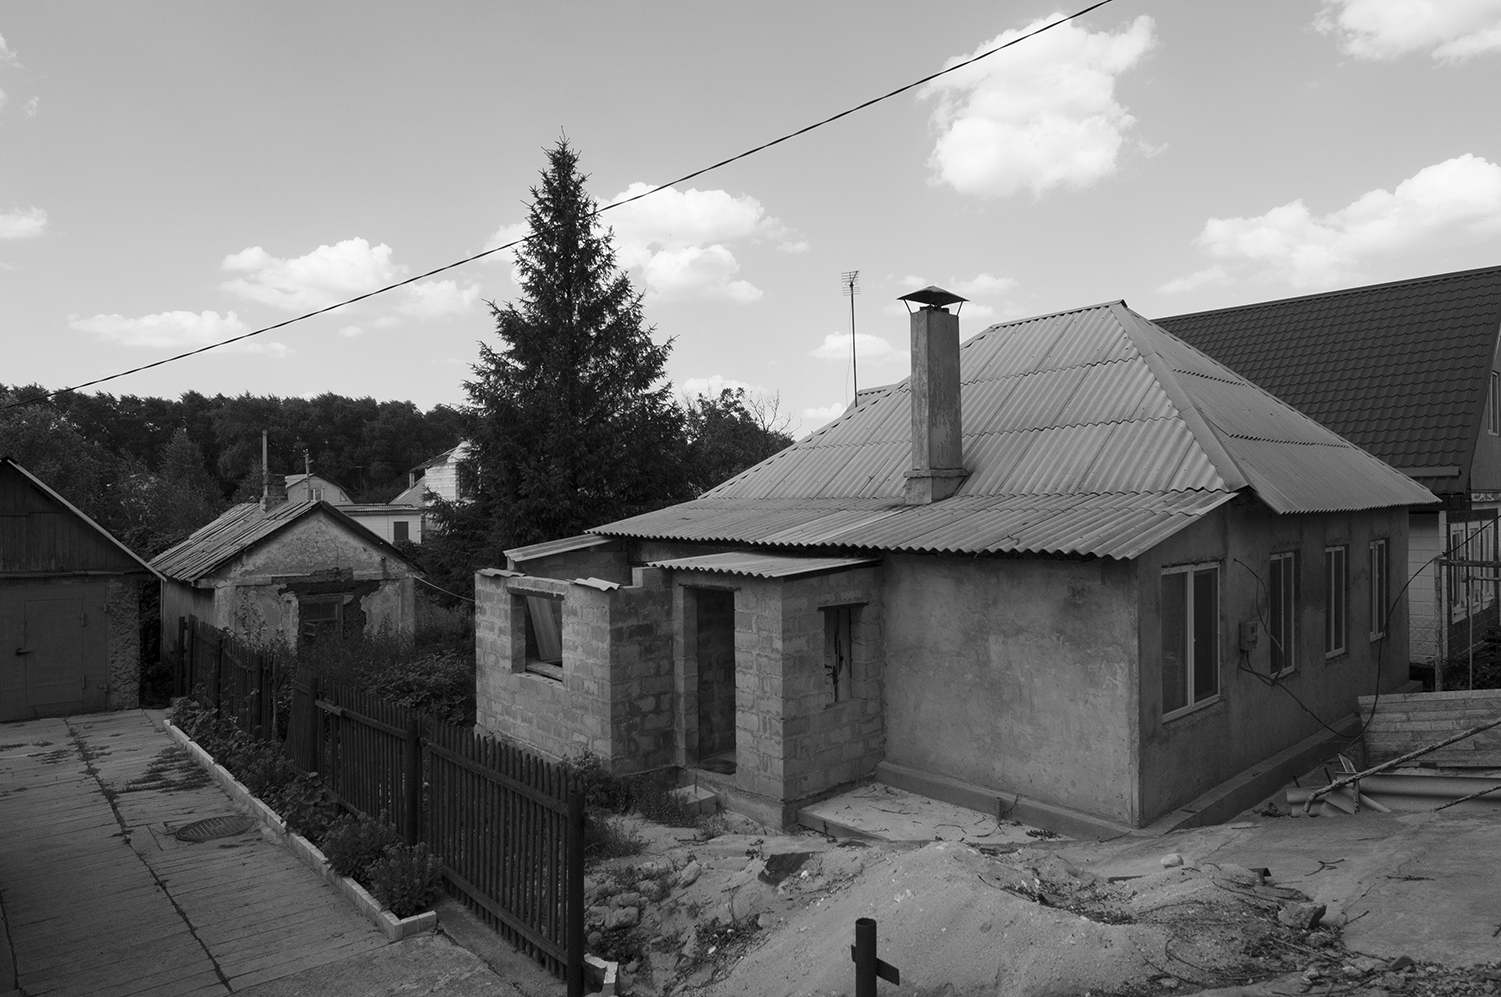 Housing located less than a kilometer away from Donetsk airport